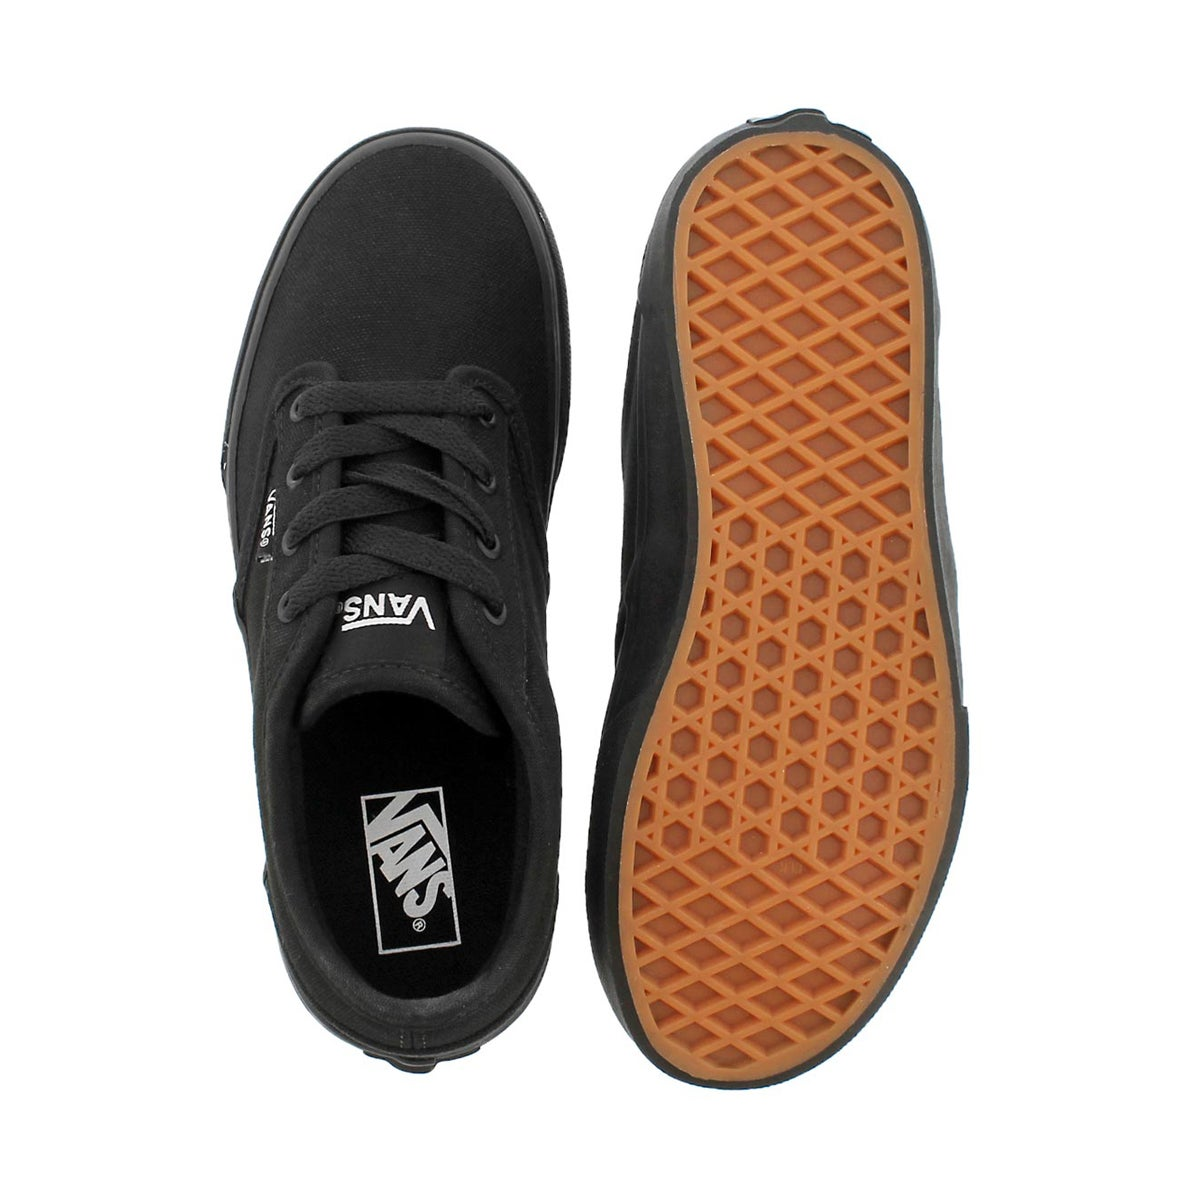 Bys Atwood blk/blk cnvs lace up sneaker